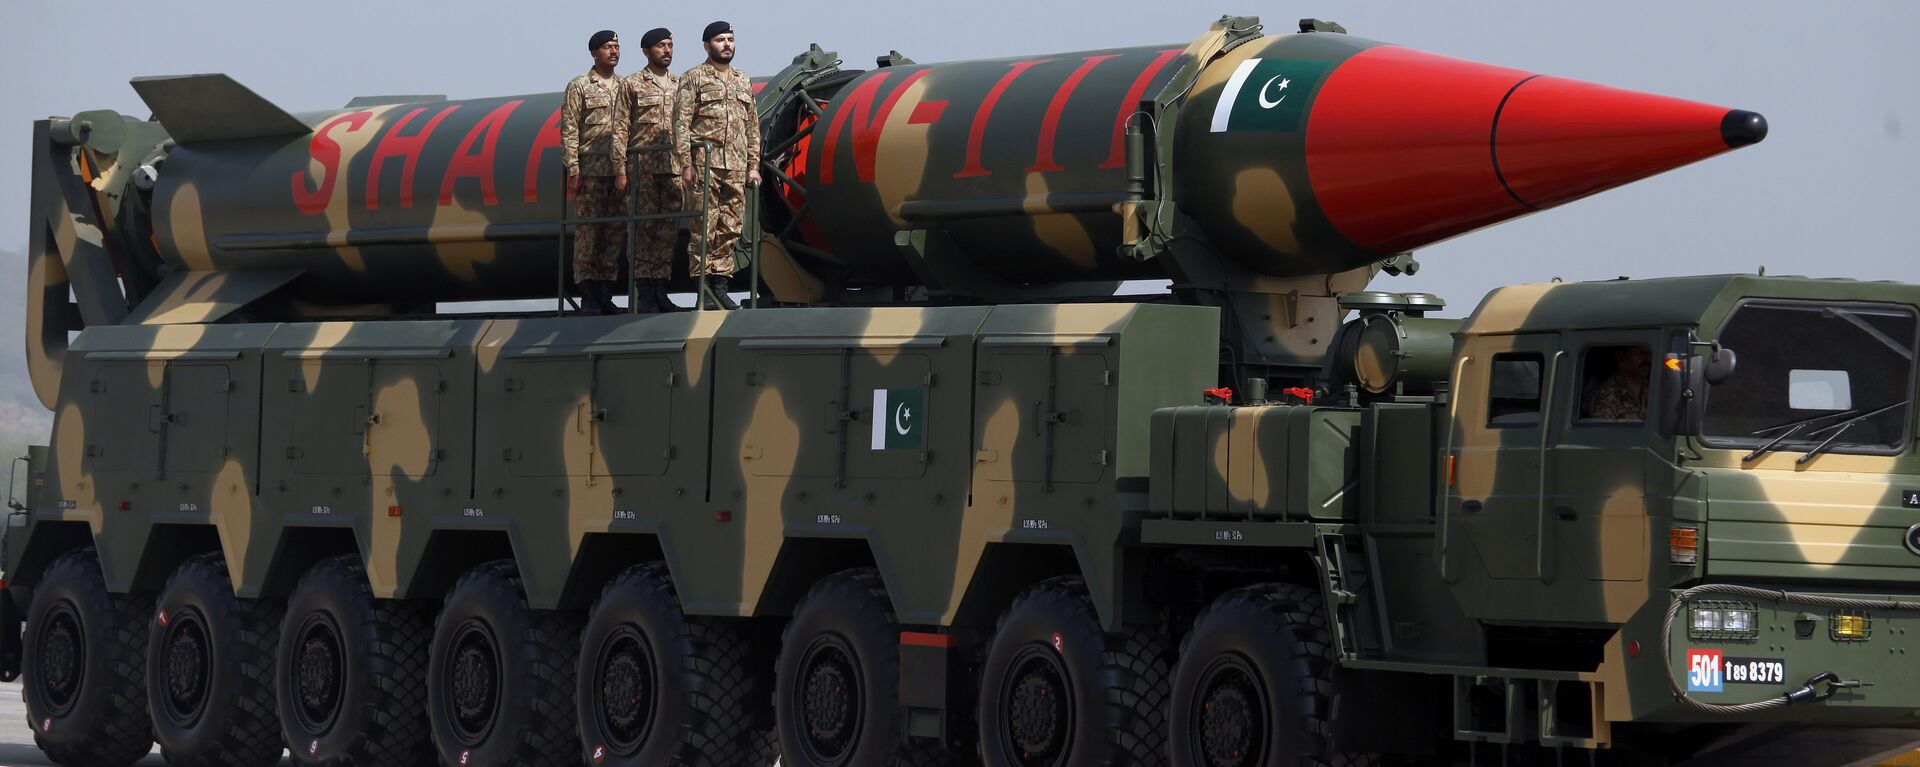 A Pakistani-made Shaheen-III missile, that is capable of carrying nuclear warheads, is on display during a military parade in Islamabad, Pakistan, Friday, March 23, 2018 - Sputnik International, 1920, 28.08.2021